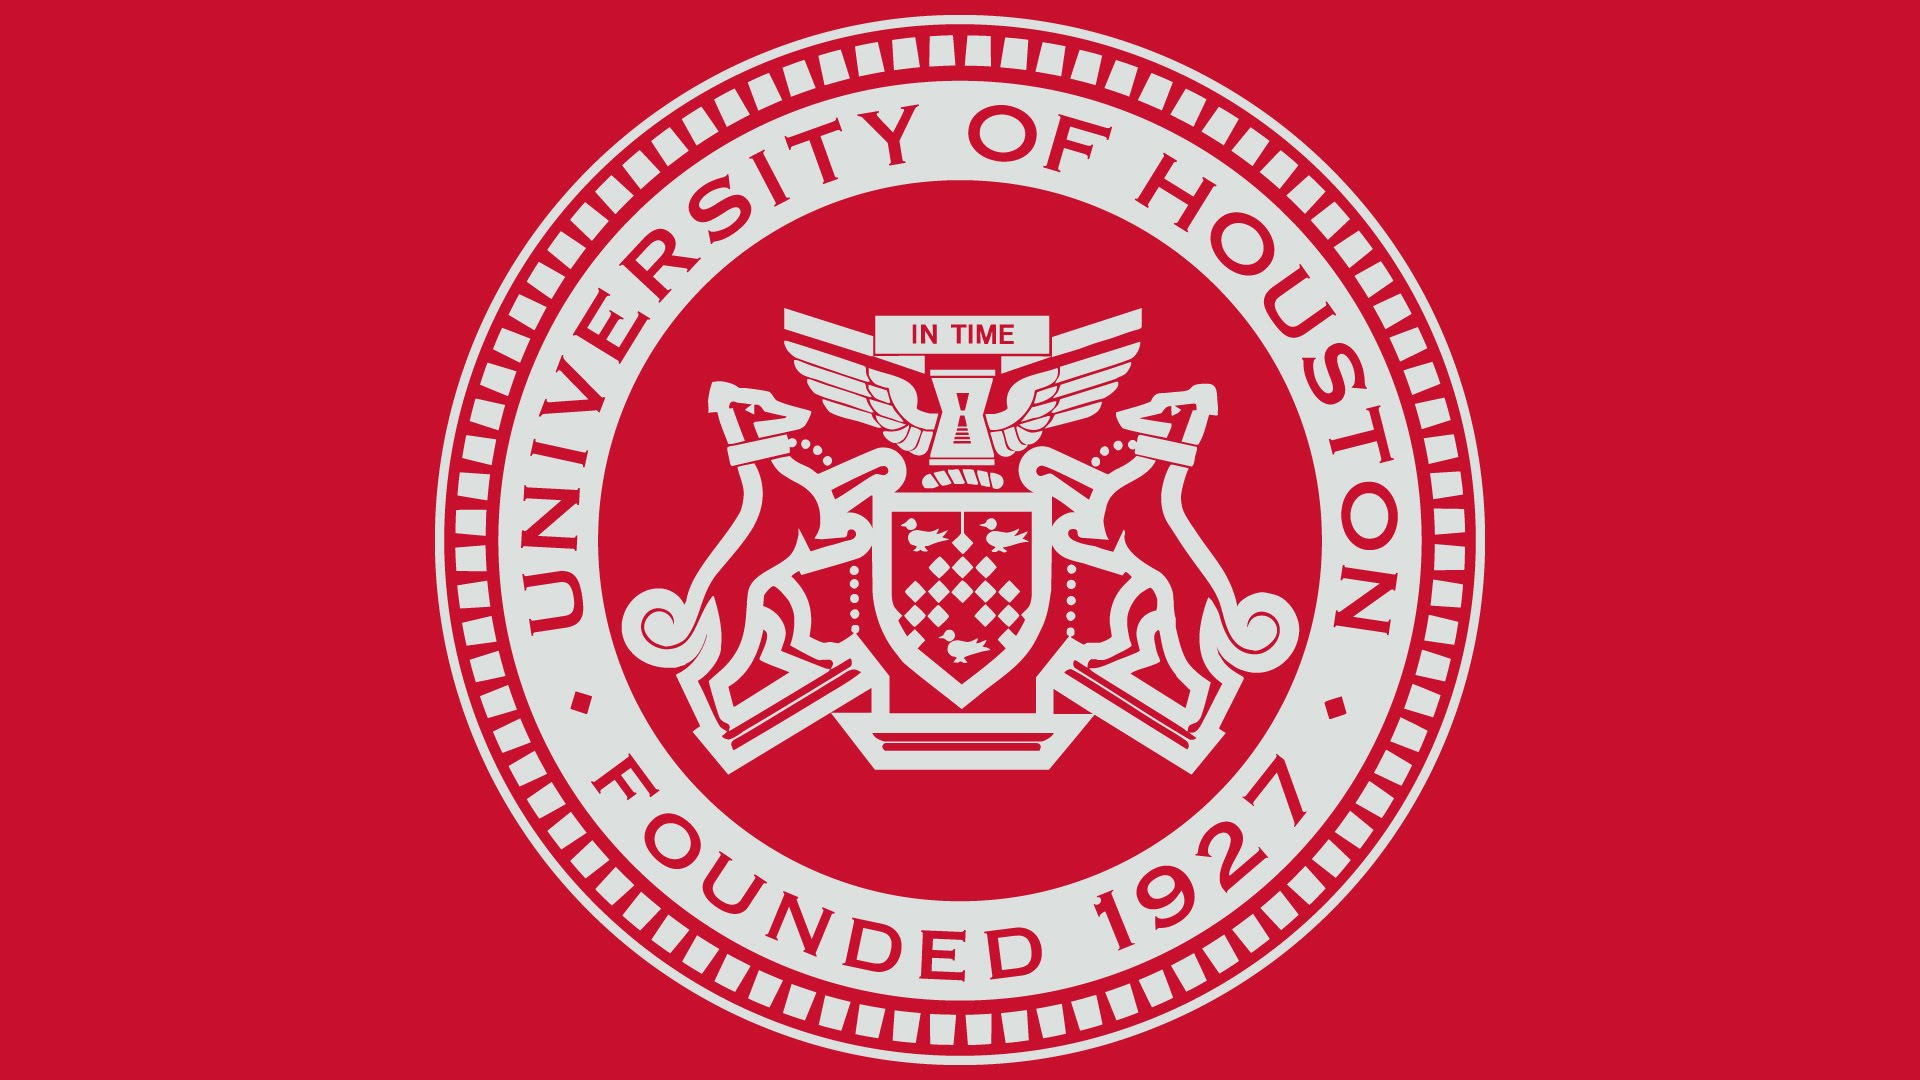 University Of Houston Wallpapers Group (47+)